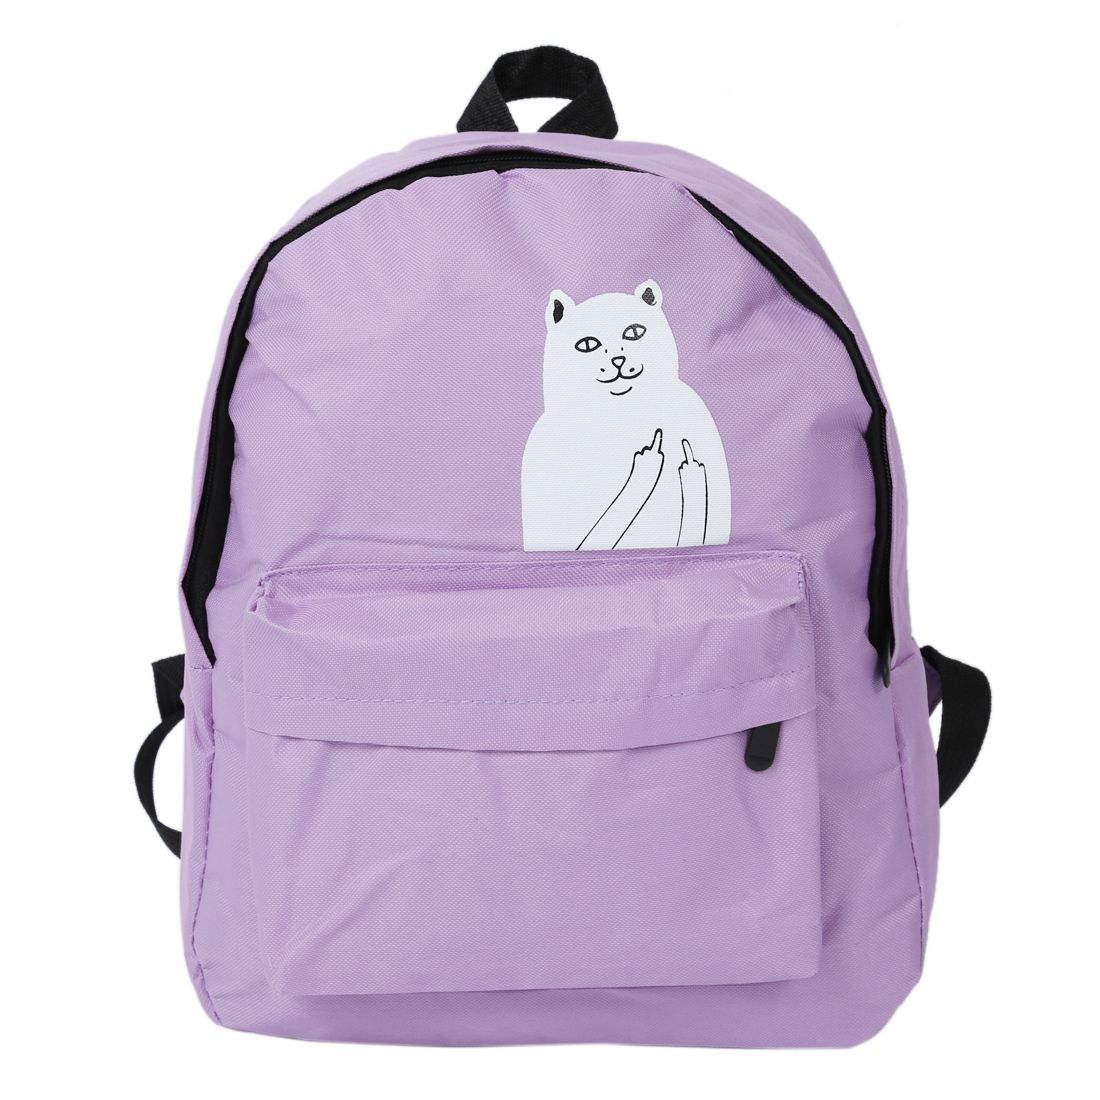 HEBA Chic Cool Young Fashion Boys and Girls Canvas Shoulder Bag Women Small Stylish Cartoon Animal Patterned Backpack